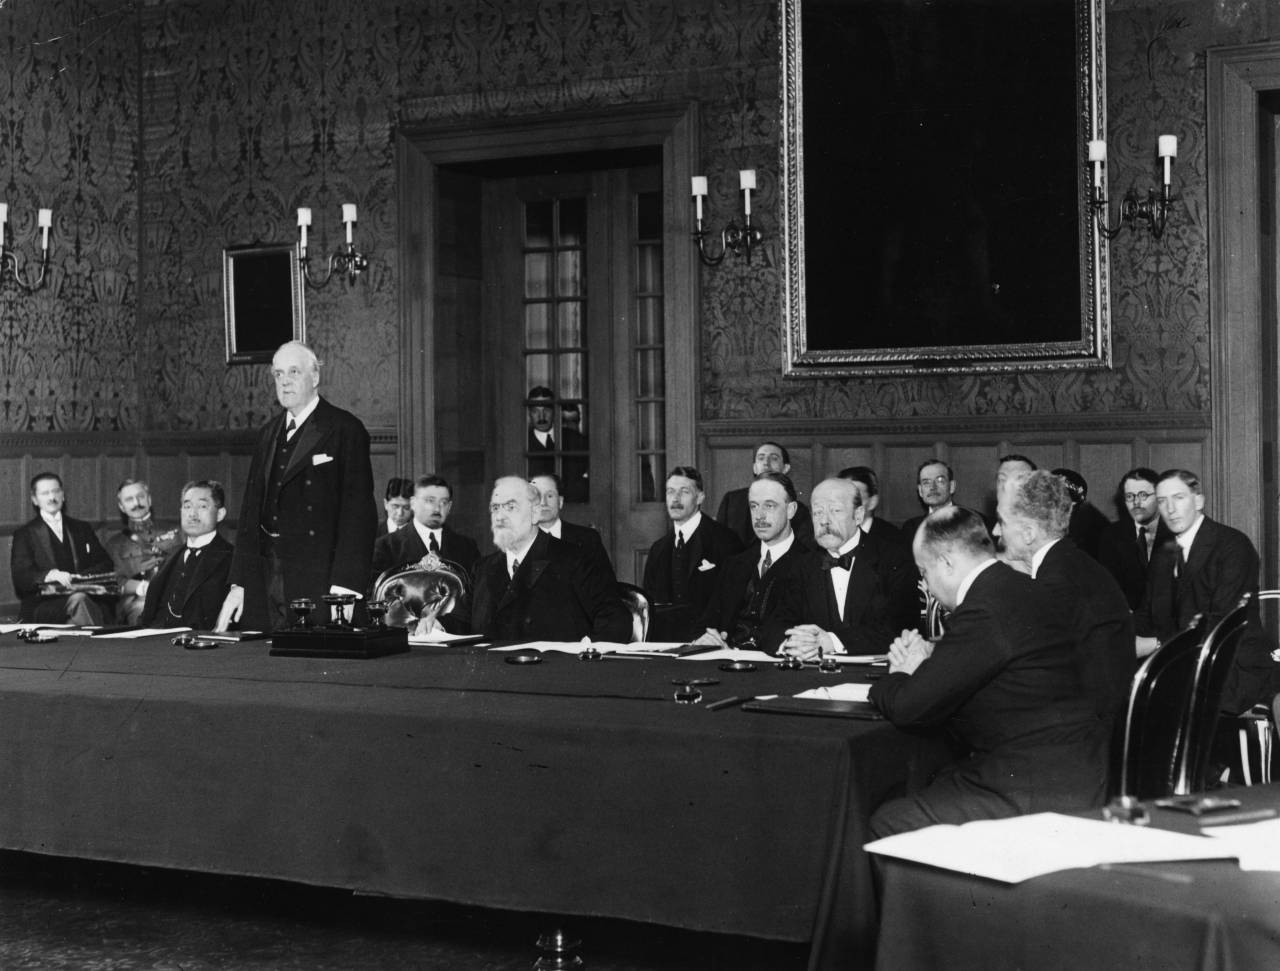 British diplomat and former prime minister Arthur Balfour (1848 - 1930) addressing the first meeting of the Council of the League of Nations in Geneva, November 15, 1920. From left to right - Dimitrios Kaklamanos of Greece, Keishiro Matsui (1868 - 1946) of Japan, Balfour, Leon Bourgeois (1851 - 1925) of France, Maggiorino Ferraris of Italy, Paul Hymans (1865 - 1941) of Belgium, and Jose Maria Quinones de Leon of Spain. The League of Nations first met on 15th November 1920 with representatives from 42 countries. The League had 32 constant members throughout its 20 year existence but 63 nations took part in various assemblies. The League of Nations was eventually superseded by the United Naitons.  (Photo by A. R. Coster/Topical Press Agency/Getty Images)